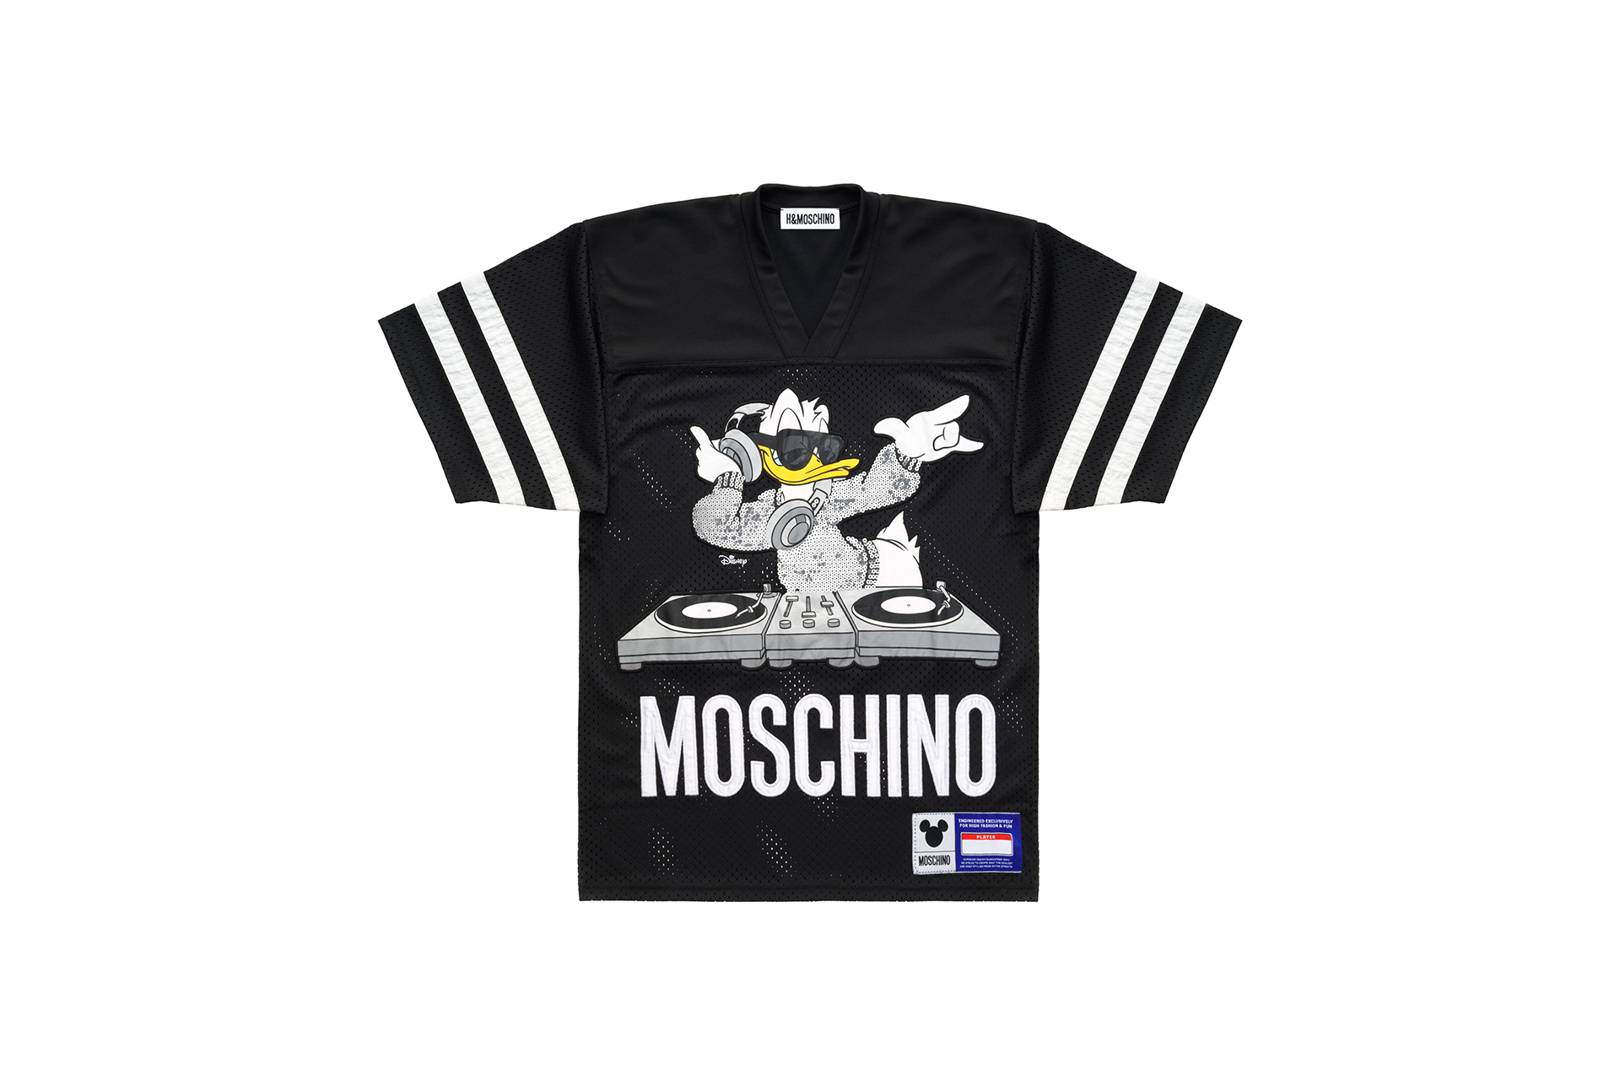 f4e195b907 Moschino X H&M: Here Are The Pieces To Buy Before Everyone Else... |  Glamour UK